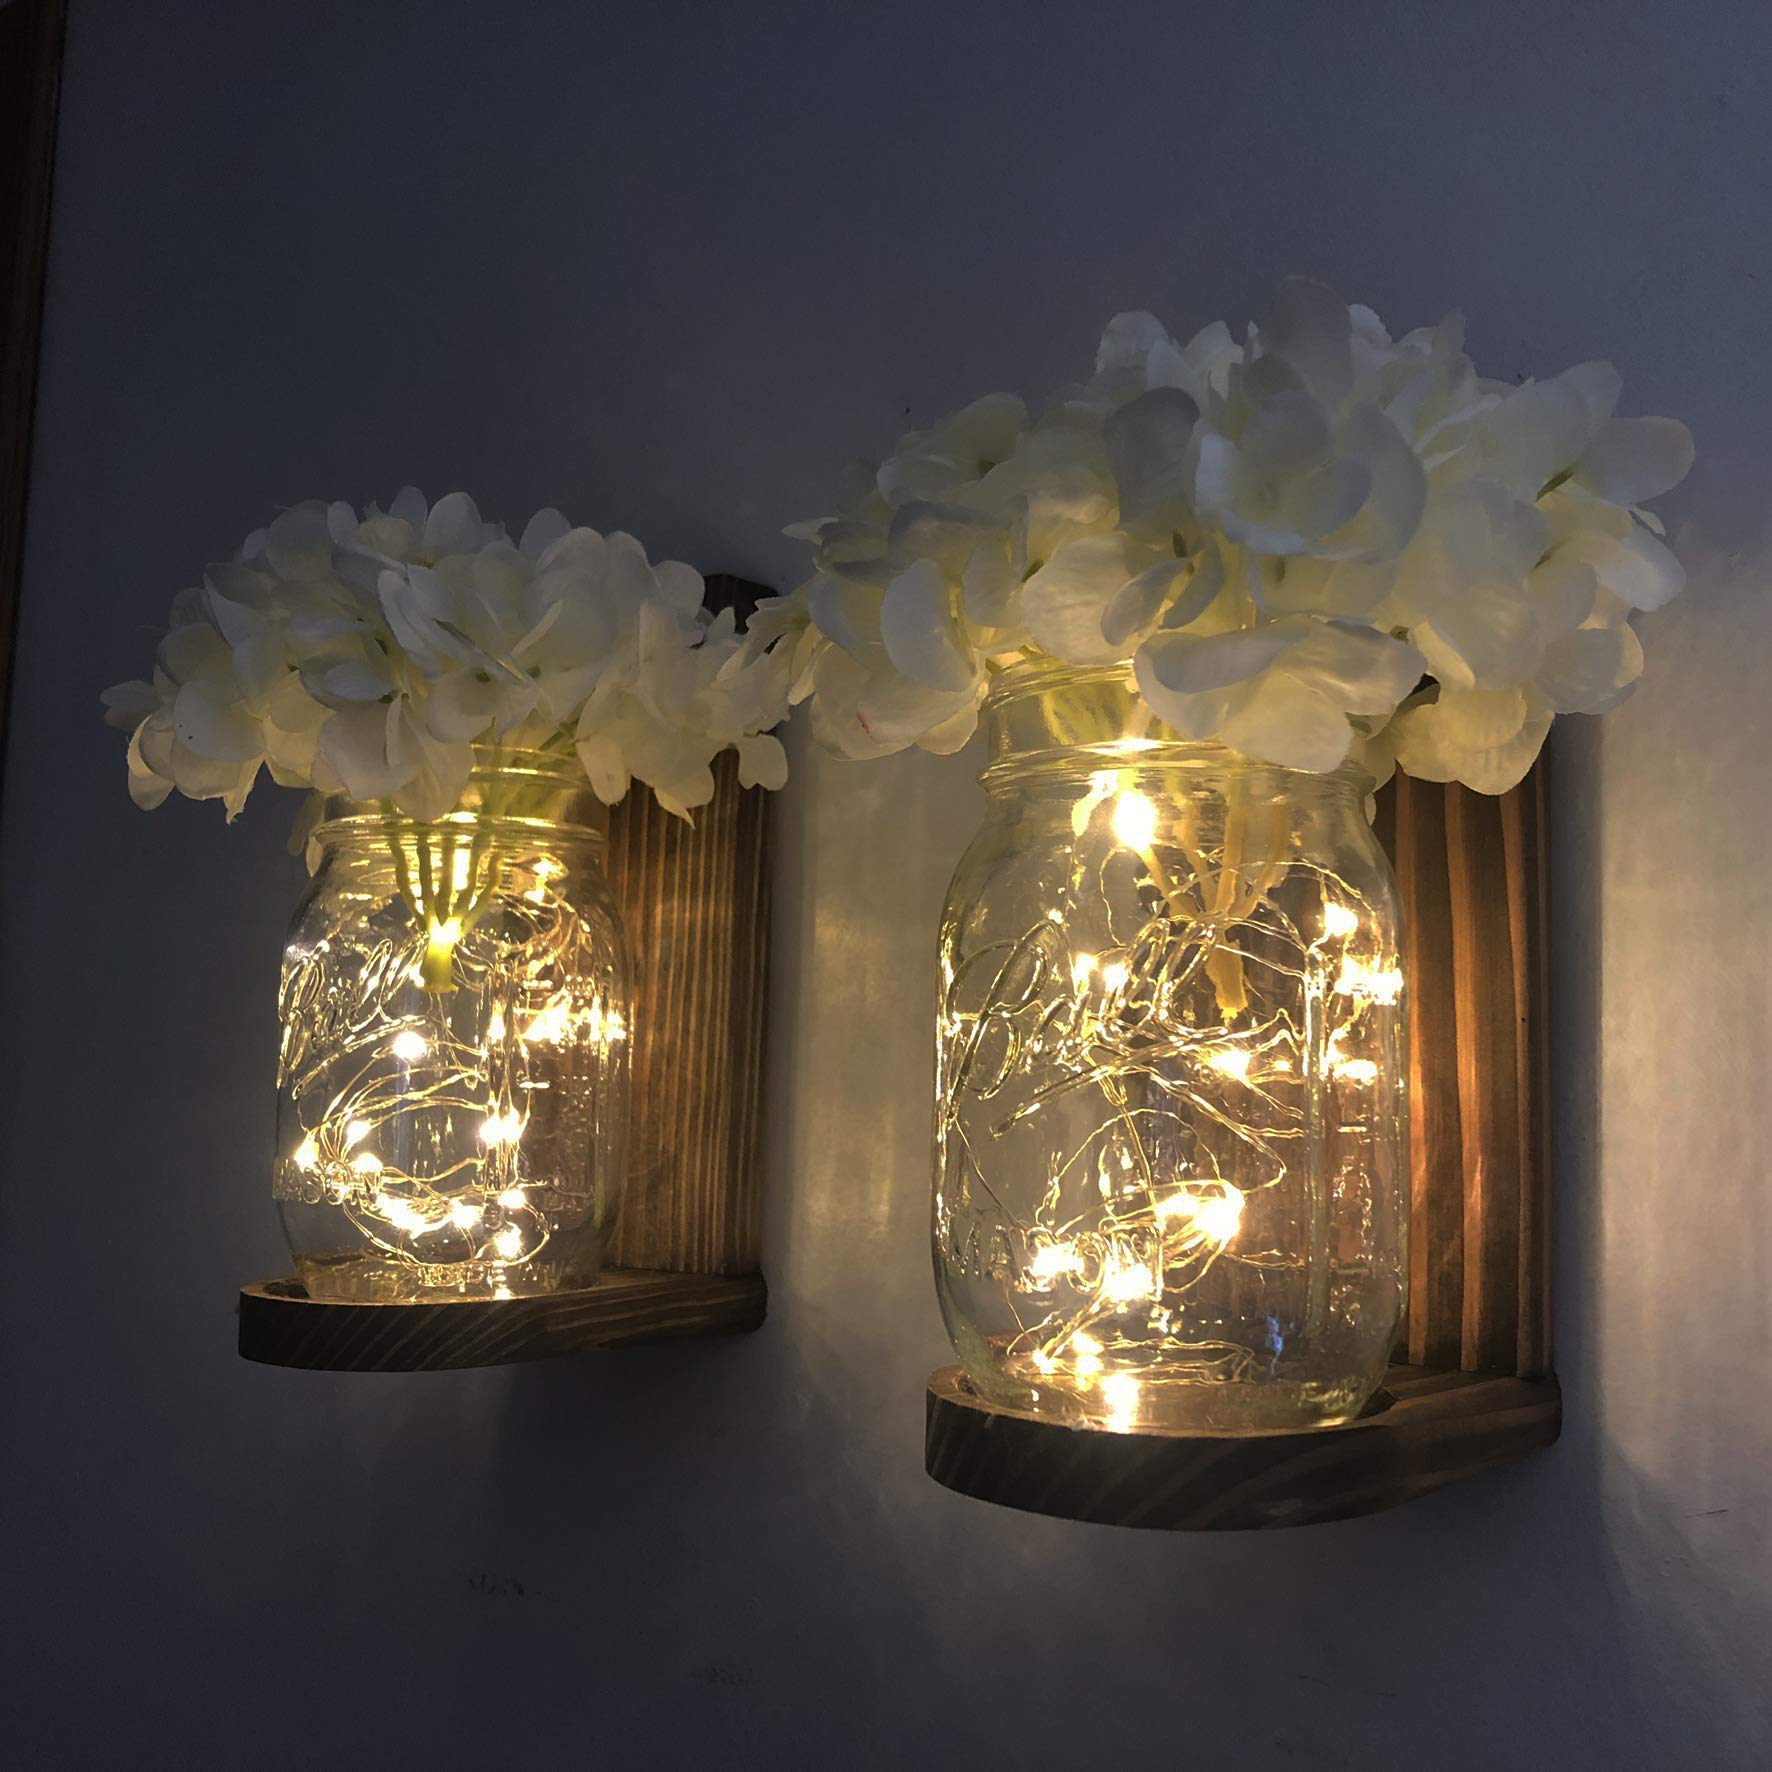 Handmade Hanging Lighted Mason Jar Wall Sconce with LED Fairy Lights and White Hydrangeas